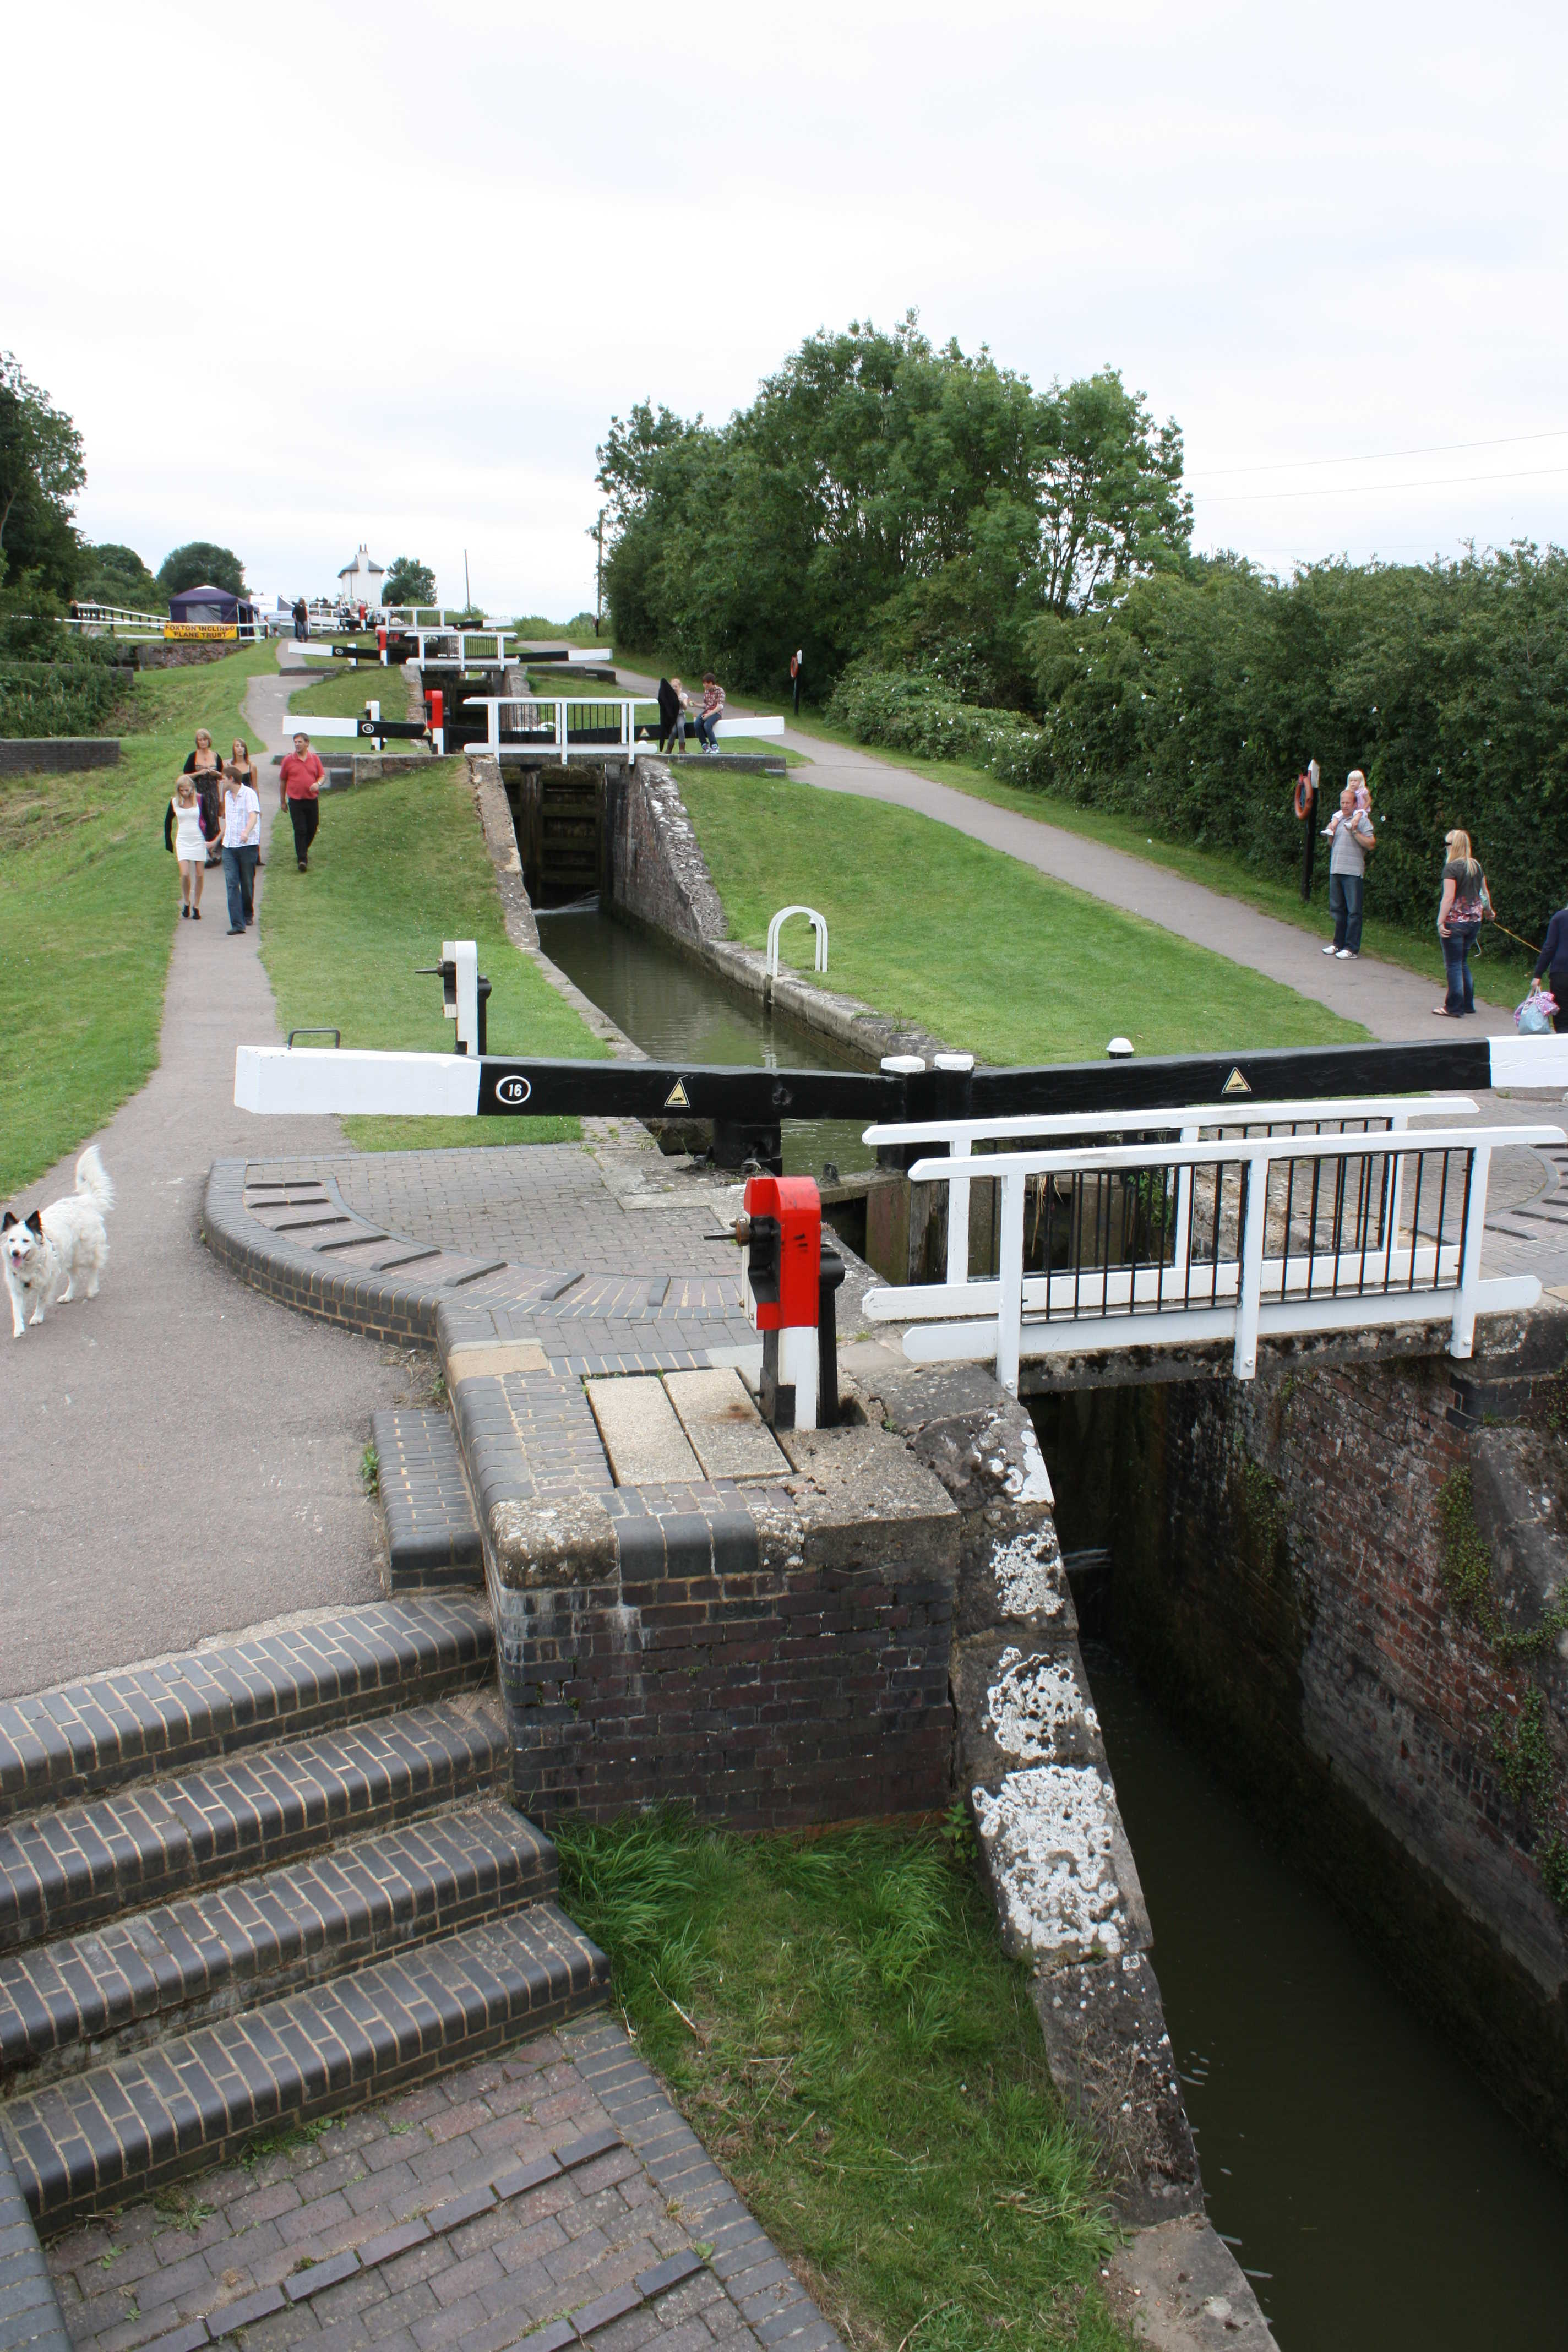 A photo of a long chain of locks on a narrow canal. People are walking along paths on both sides, and the locks are smartly painted in black, white and red.